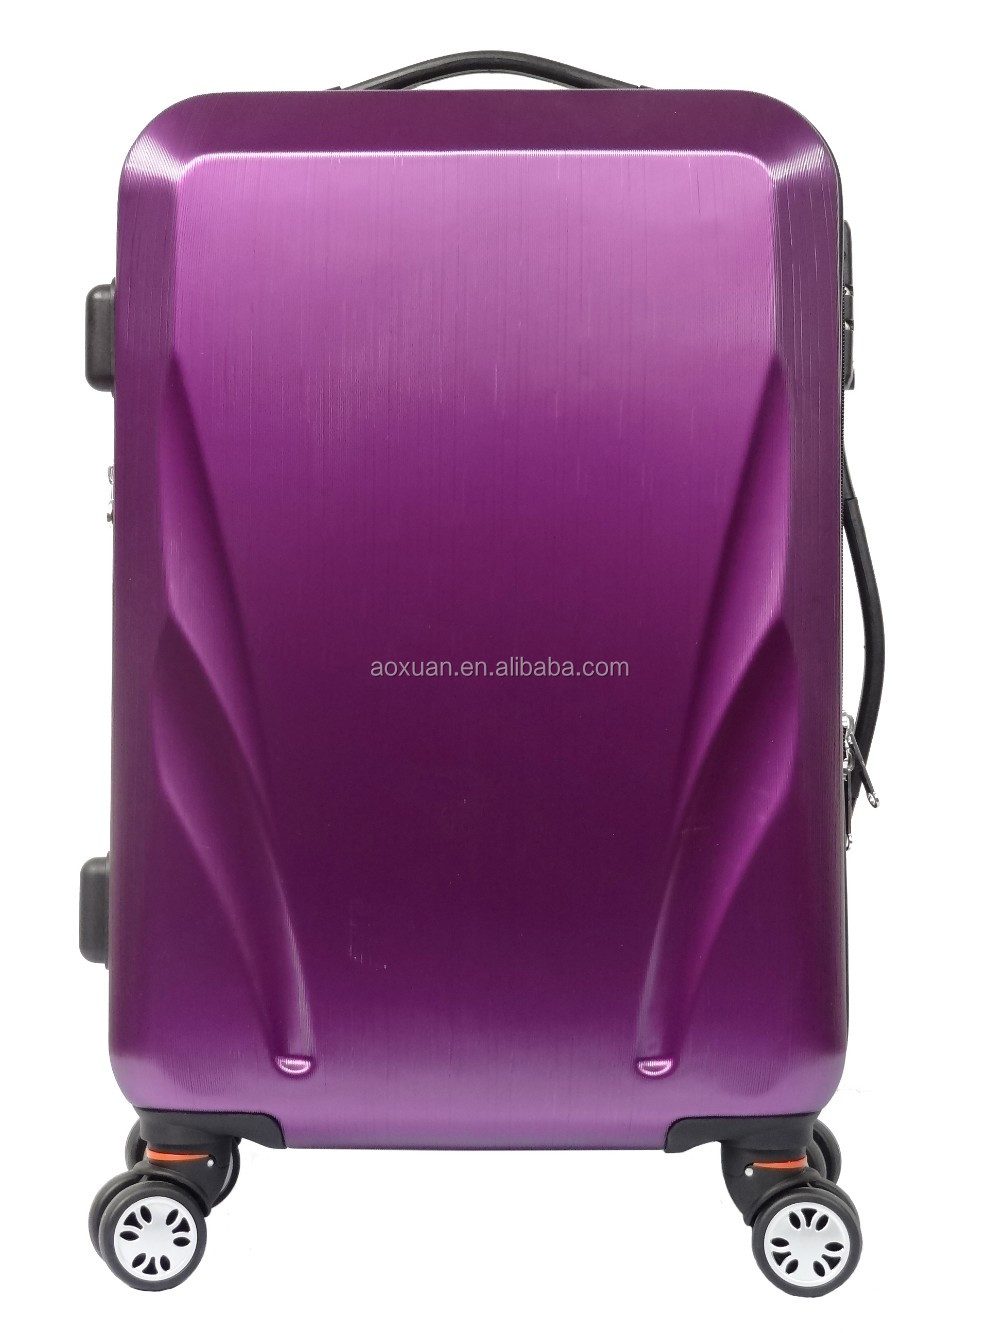 abs pc luggage 2016 new luggage